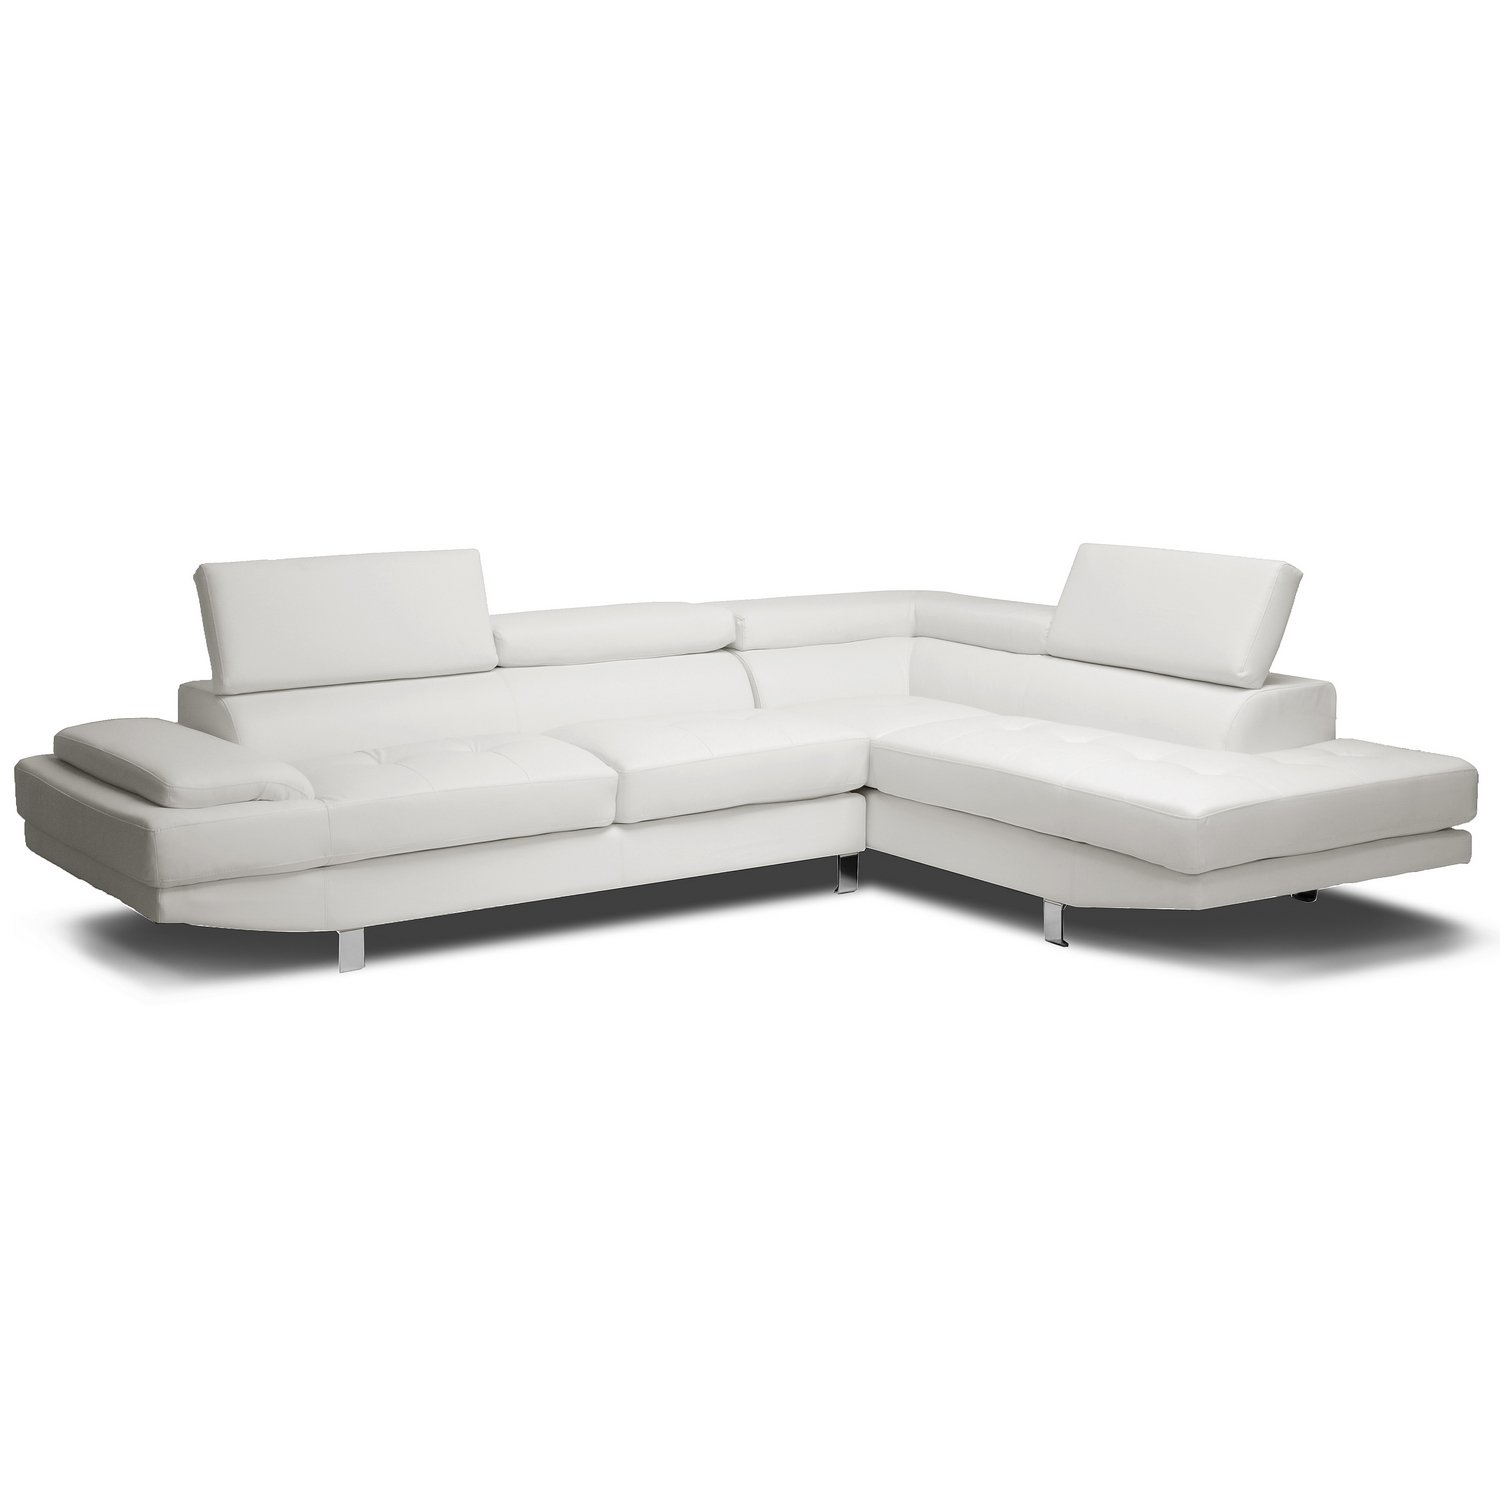 Charmant Amazon.com: Baxton Studio Selma Leather Modern Sectional Sofa, White:  Kitchen U0026 Dining